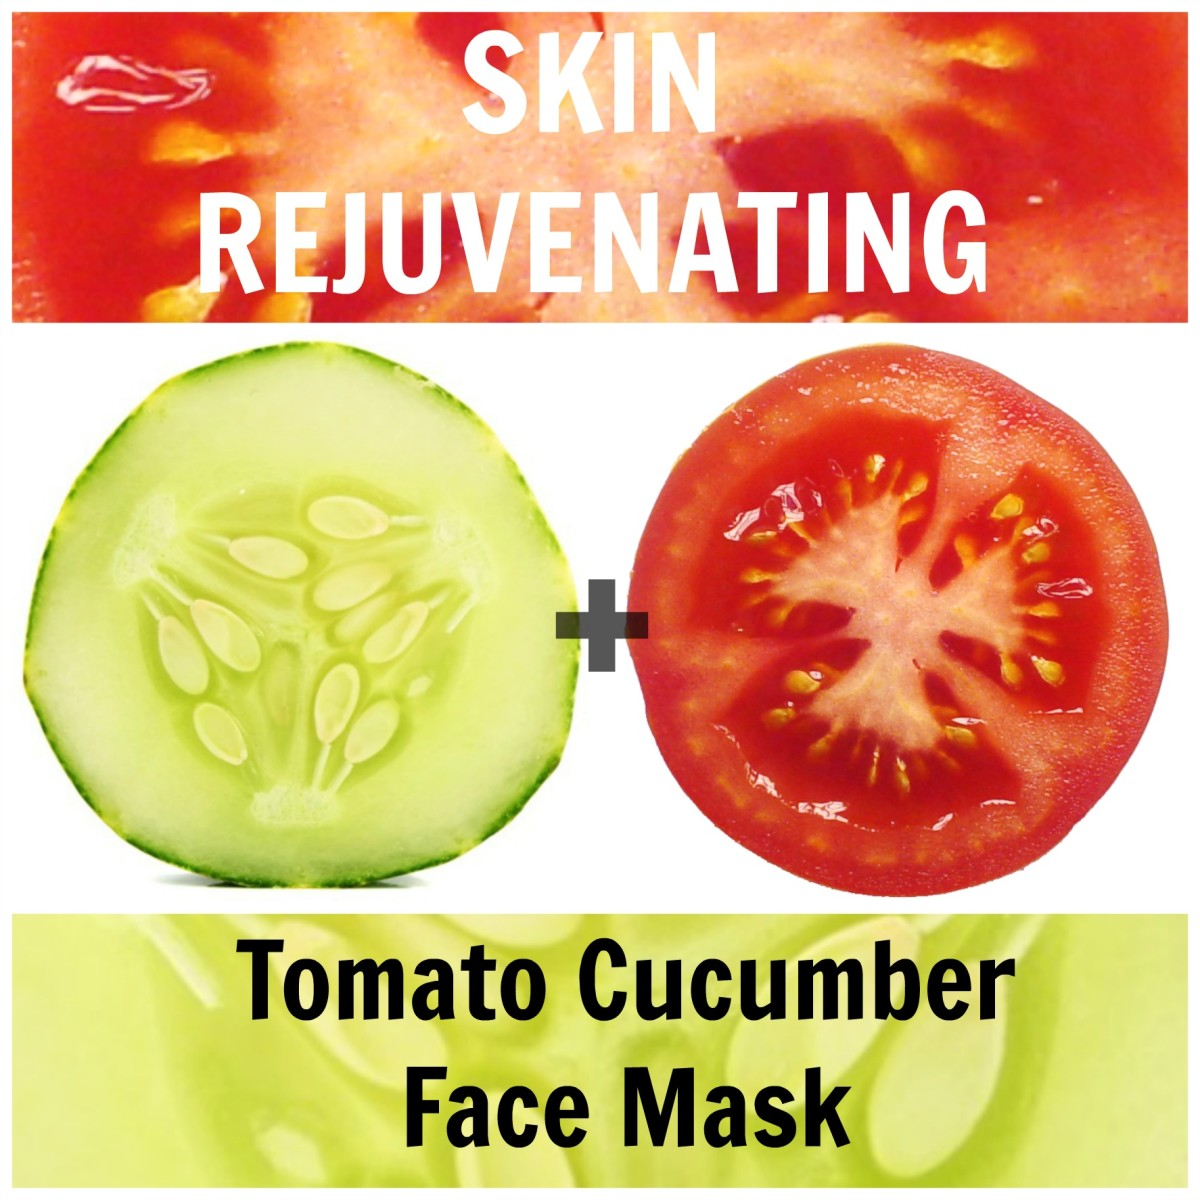 It doesn't get any more refreshing than this! Use tomato + cucumber for refreshed, rejuvenated and youthful skin.